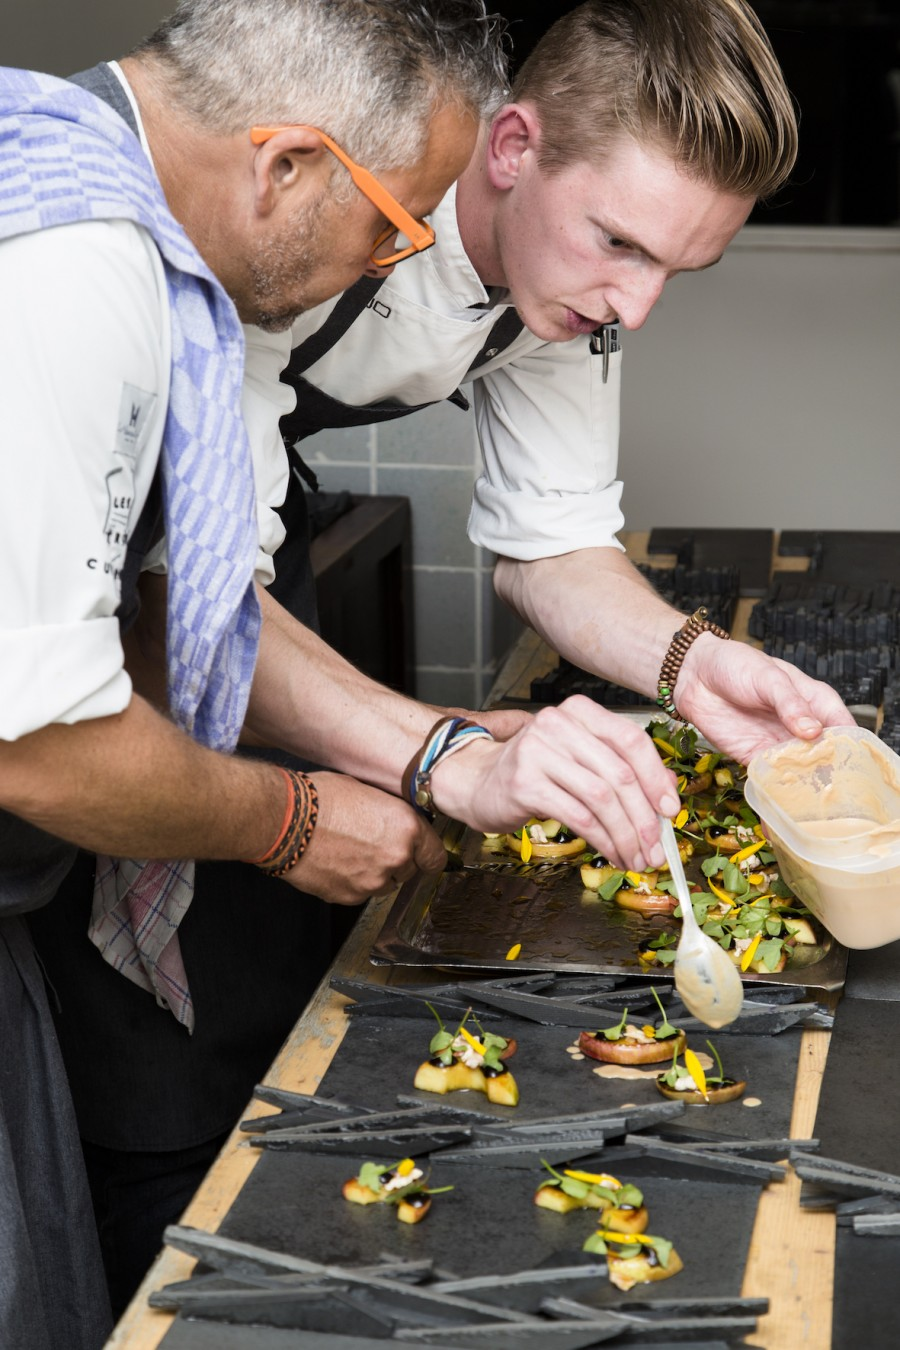 Chef Edwin Vinke and Nino Willems setting Grapes, Apples, Nuts, Jerusalem artichoke and Sorrel on slate plates by Matthias Dyer